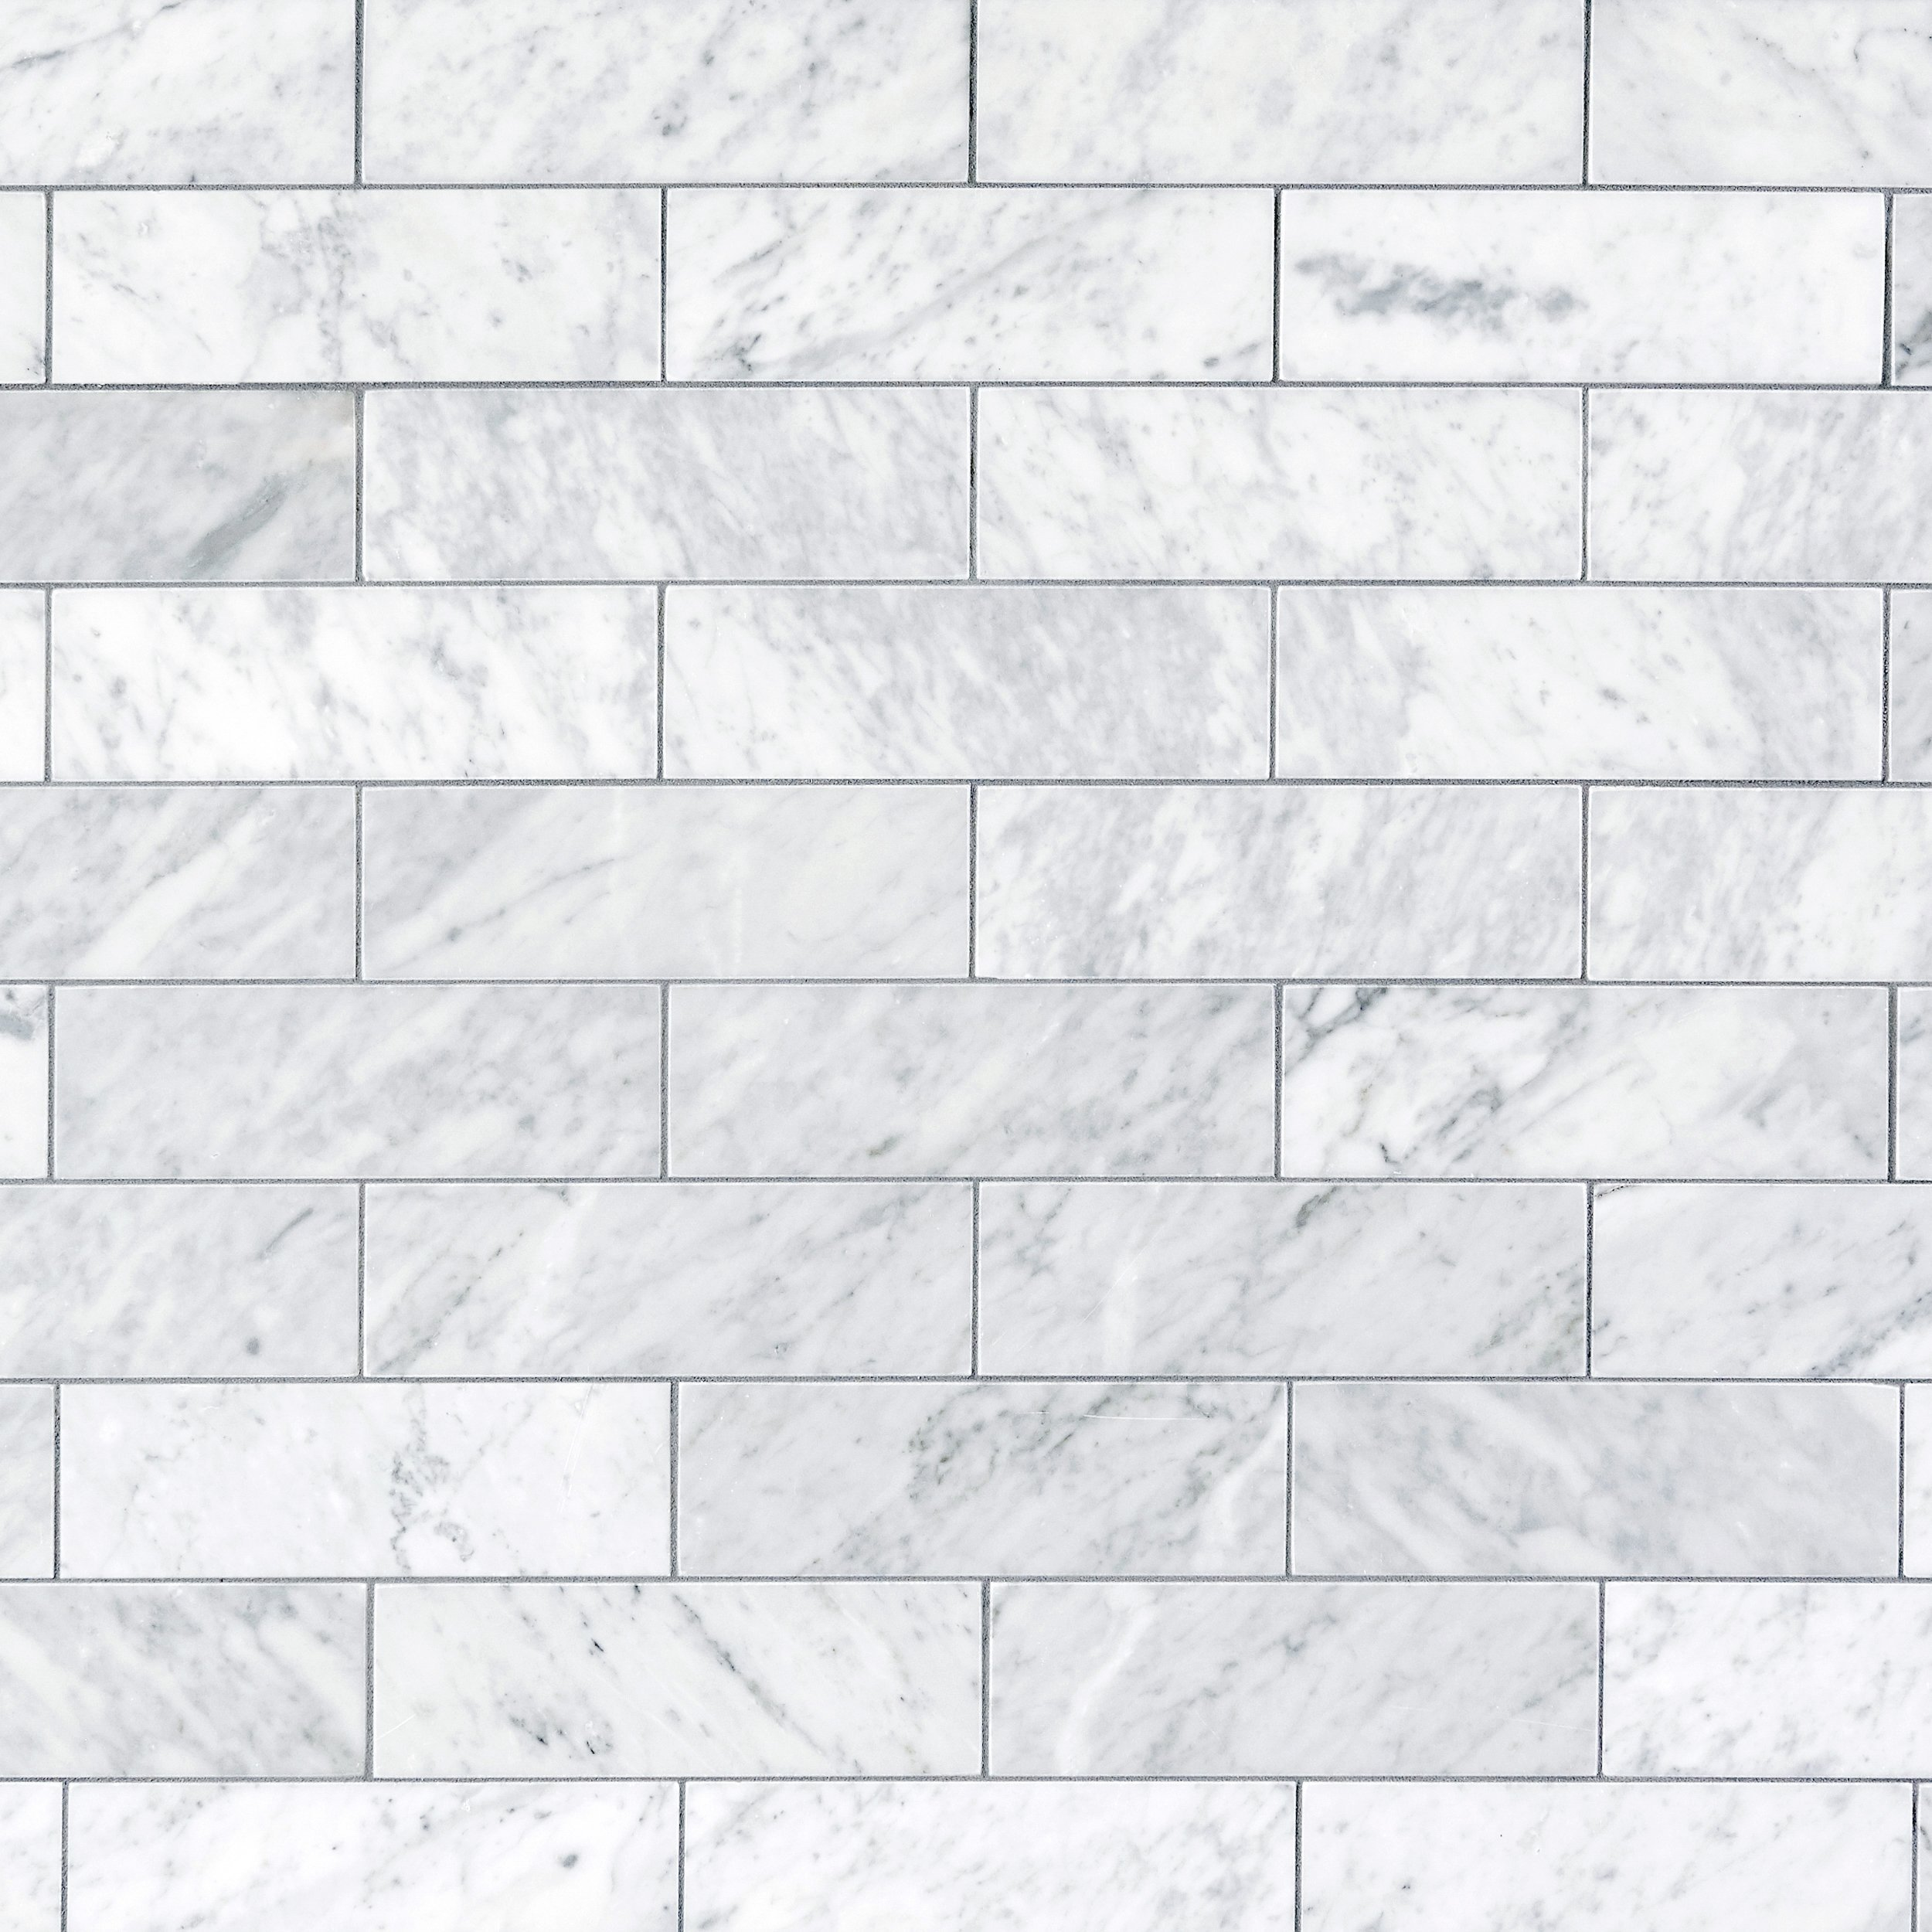 Bianco Carrara Honed Marble Tile 3 X 9 100105105 Floor And Decor